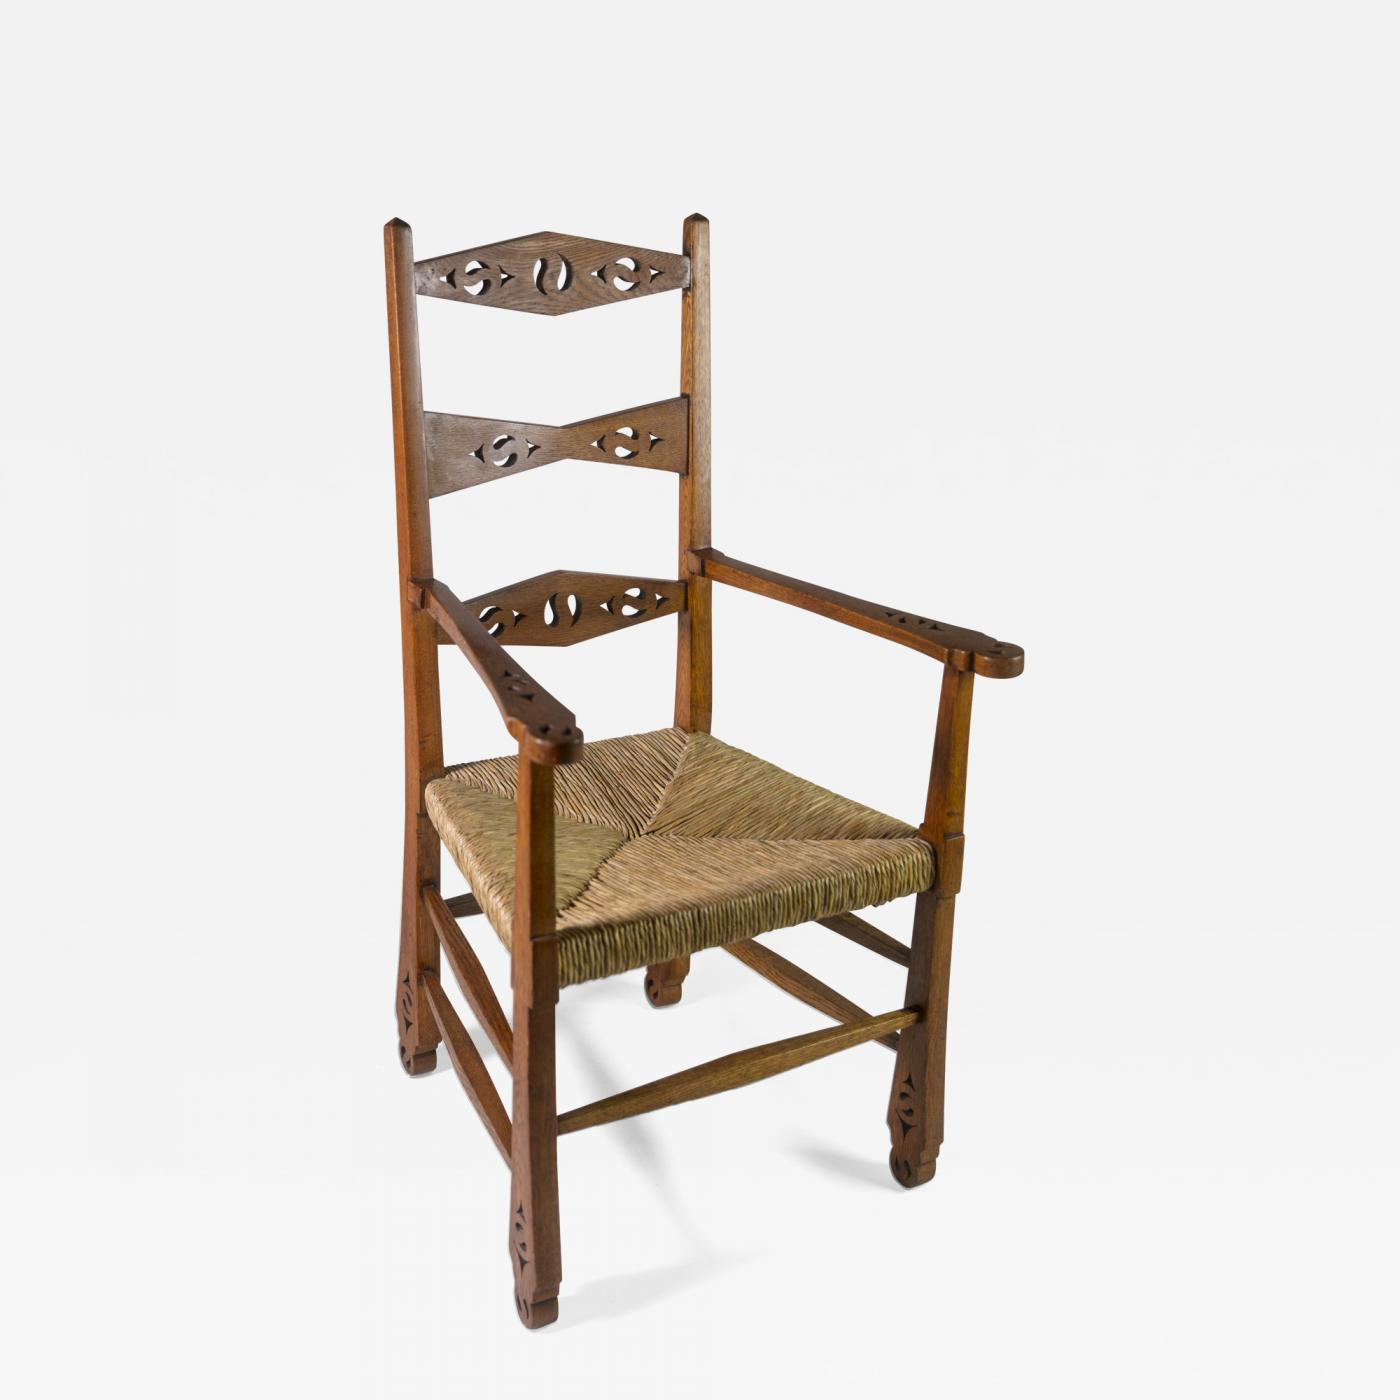 19th C English Arts Crafts Oak Wood Chair With A Rush Seat